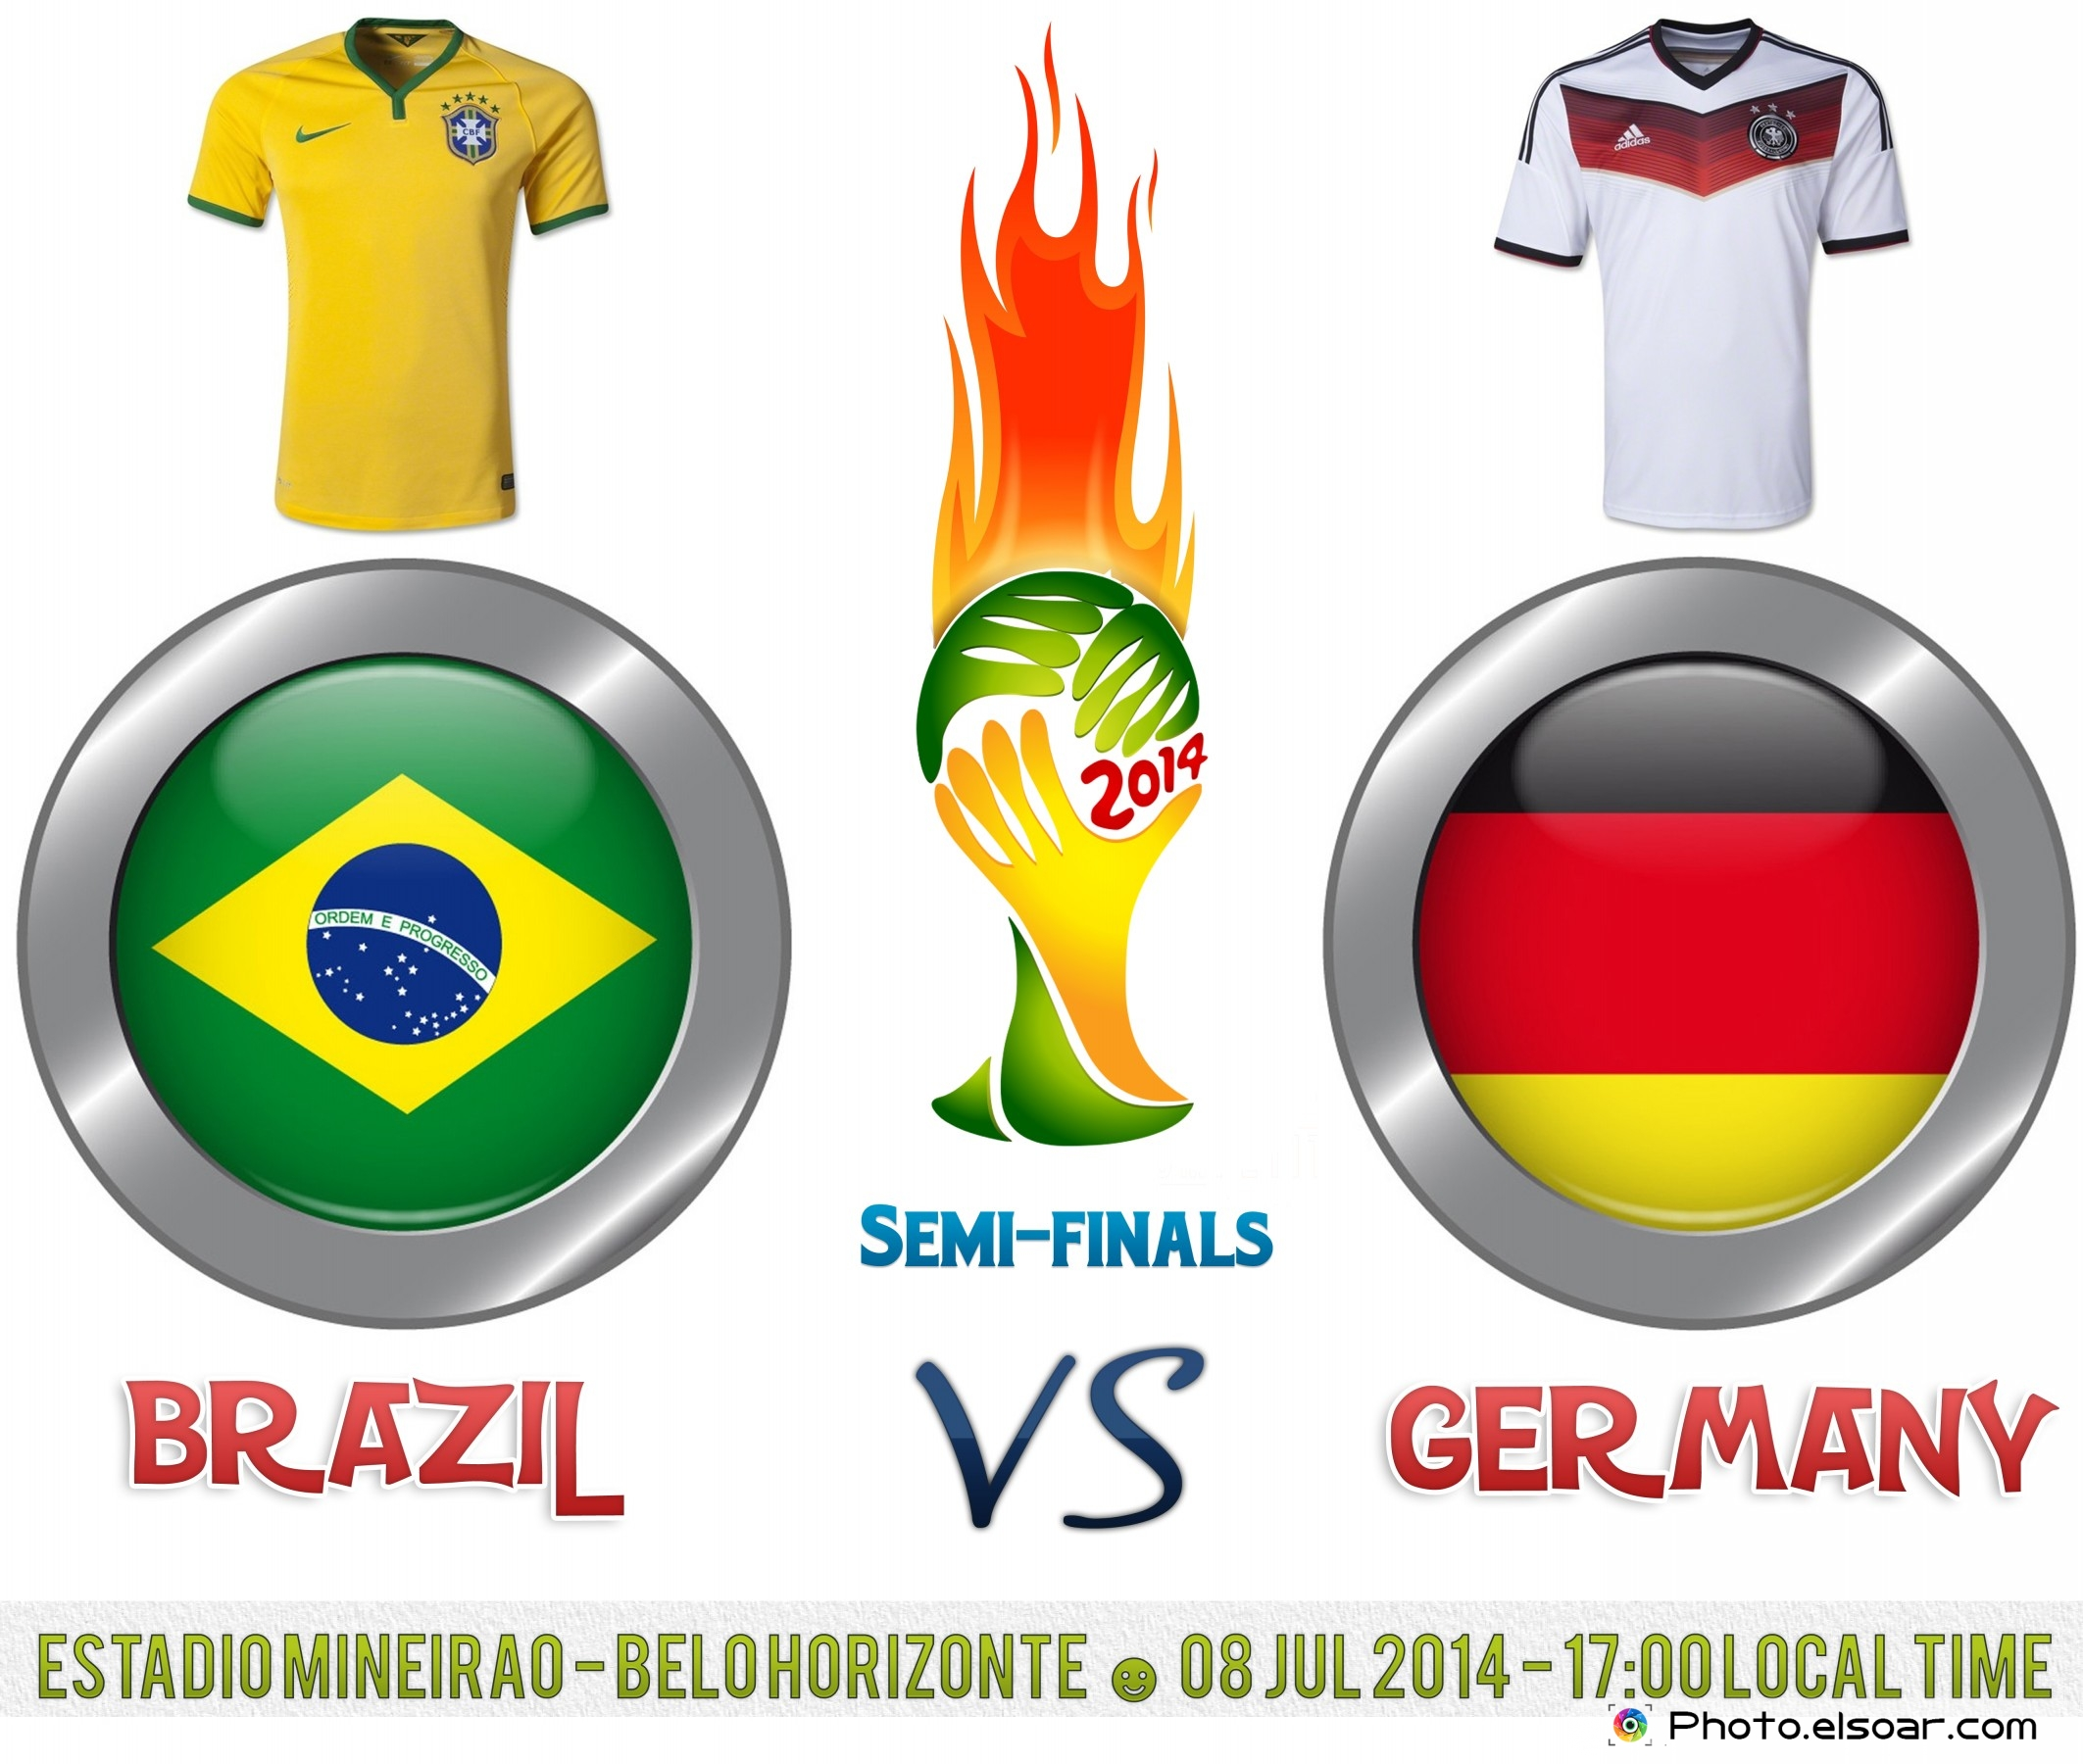 Brazil Vs Germany World Cup 2014 Semi-Finals